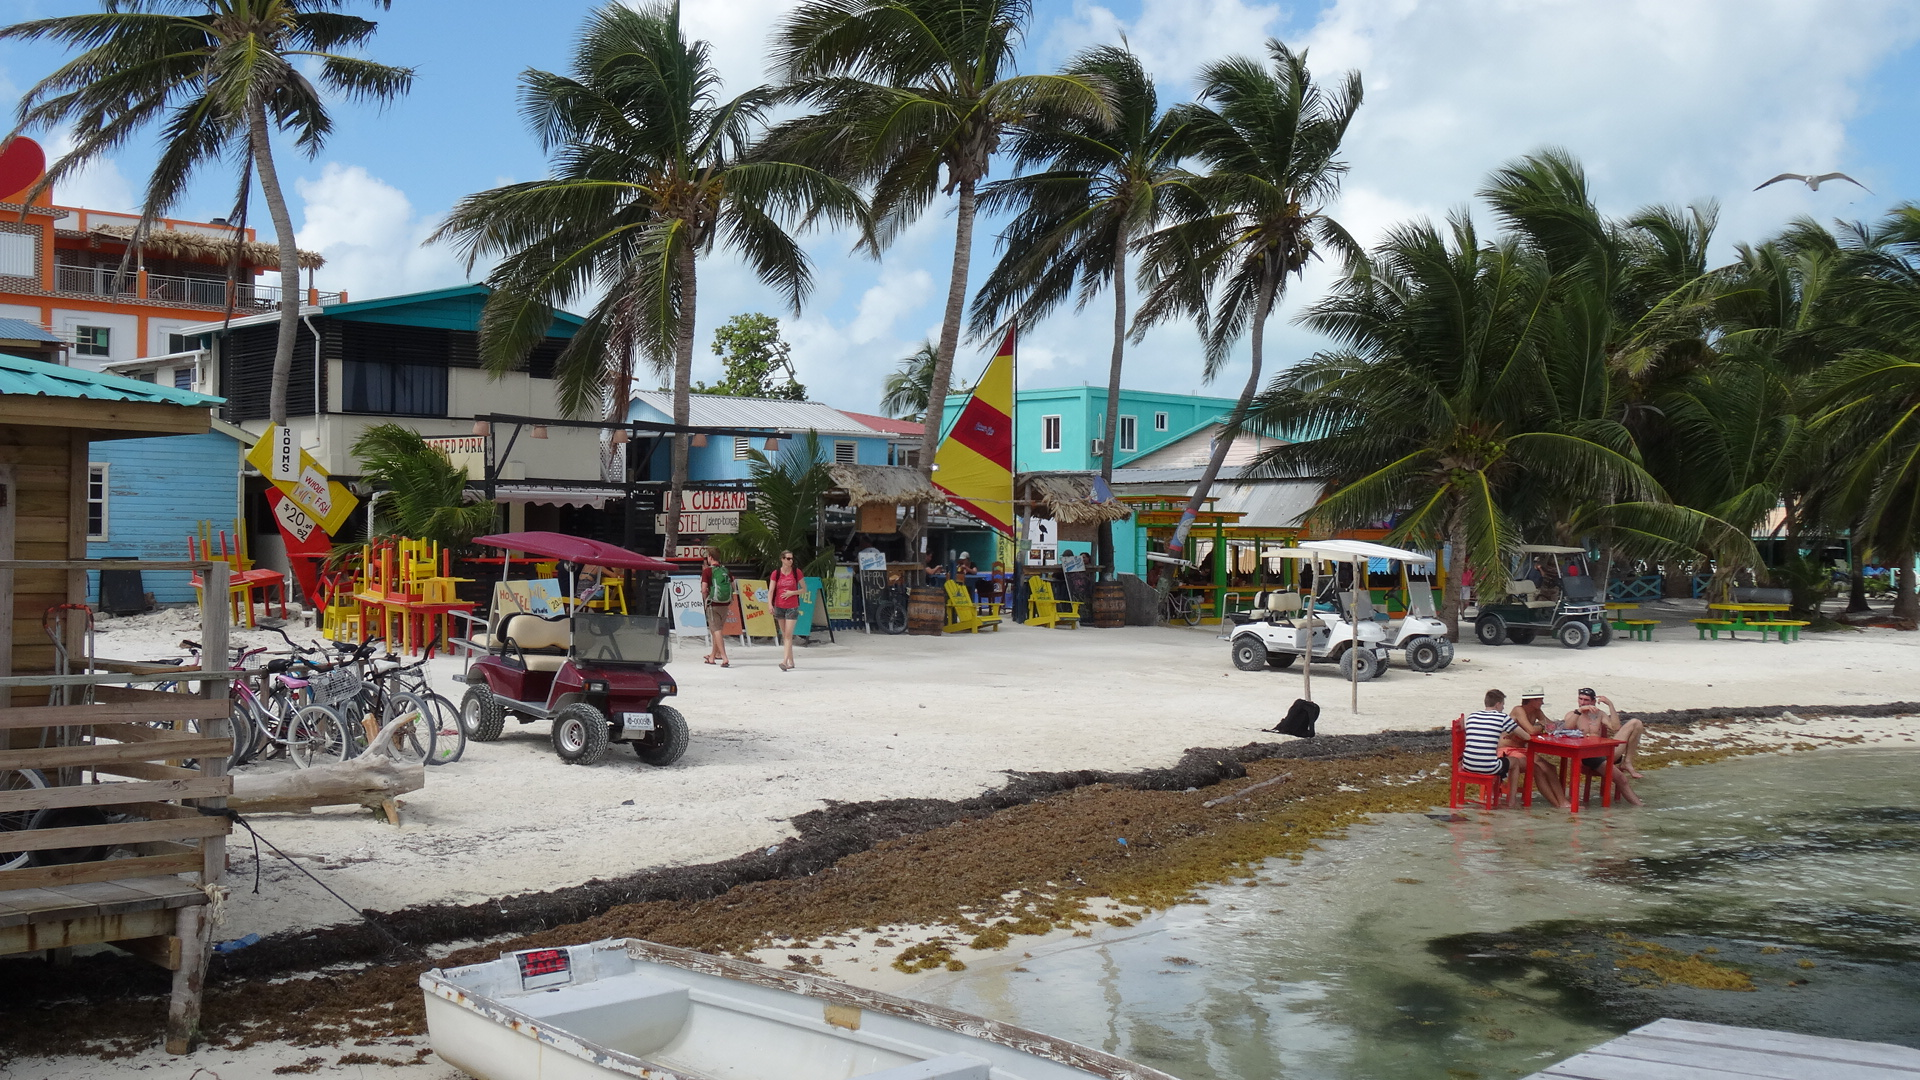 Caye Caulker Bright Buildings And Golf Buggies